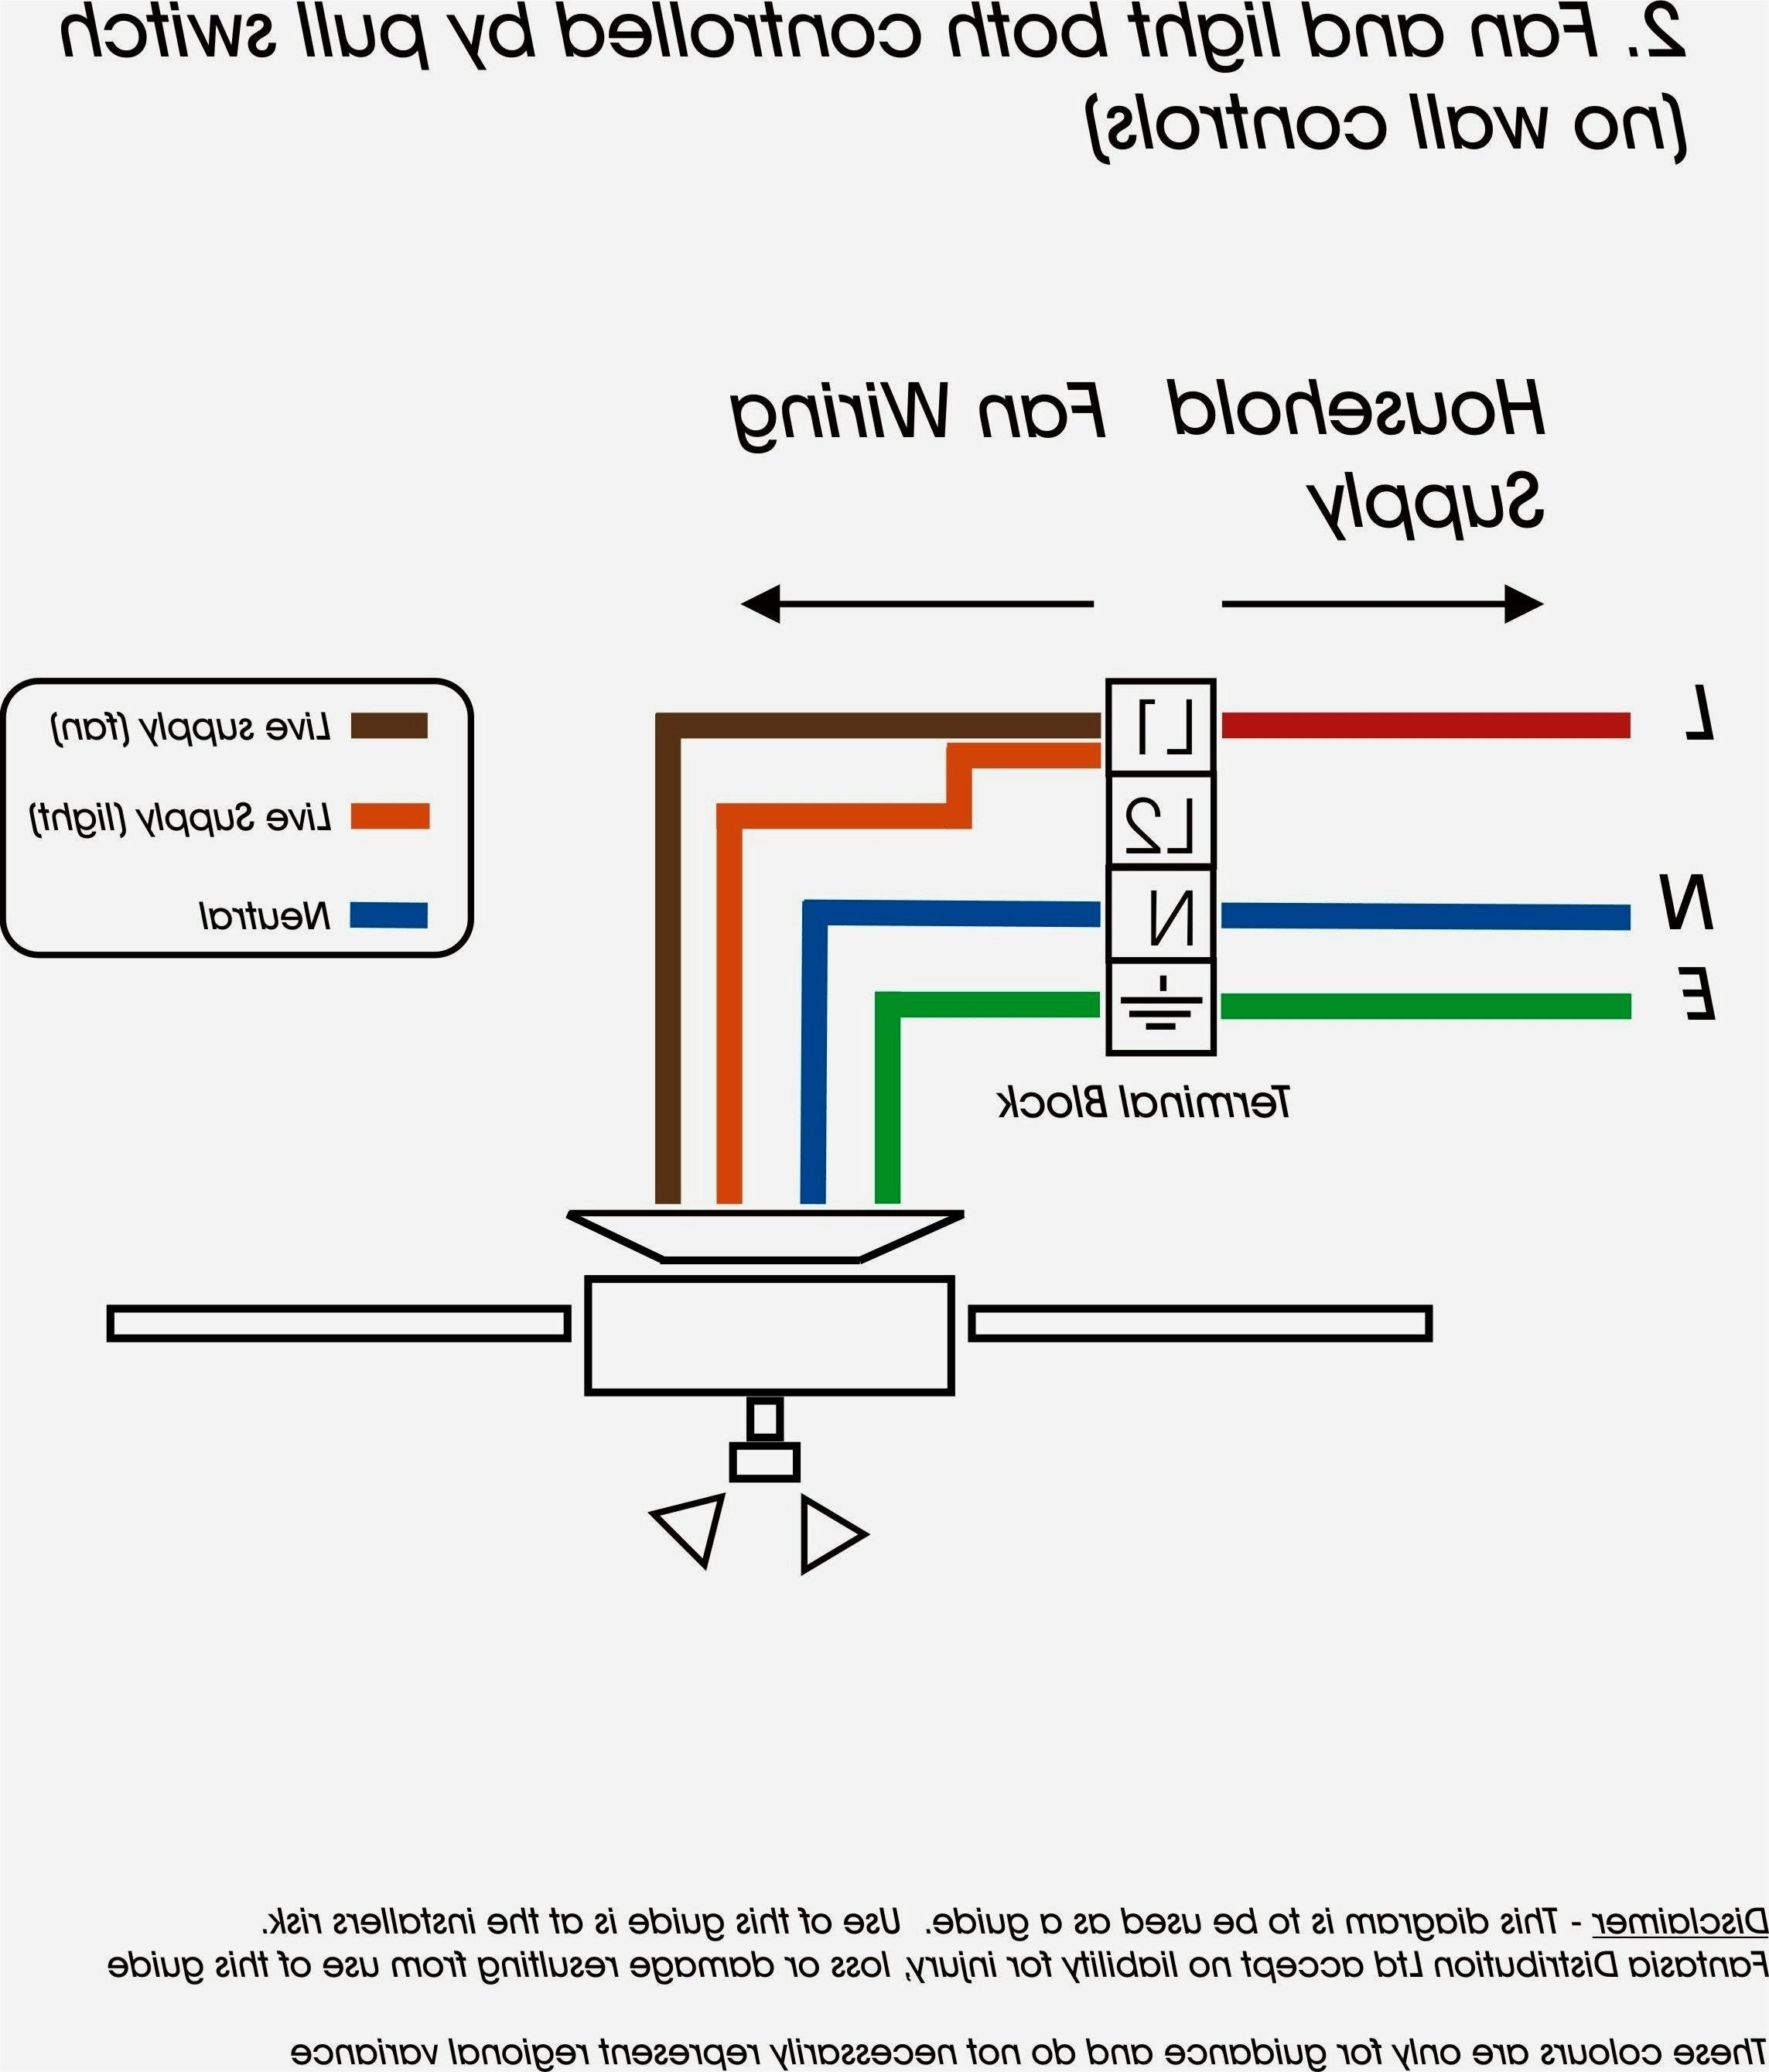 ceiling fan dimmer switch wiring diagram Collection-Wiring Diagram for Ceiling Fan with Dimmer Switch New Ceiling Fan Wiring Diagram Capacitor A with 6-p